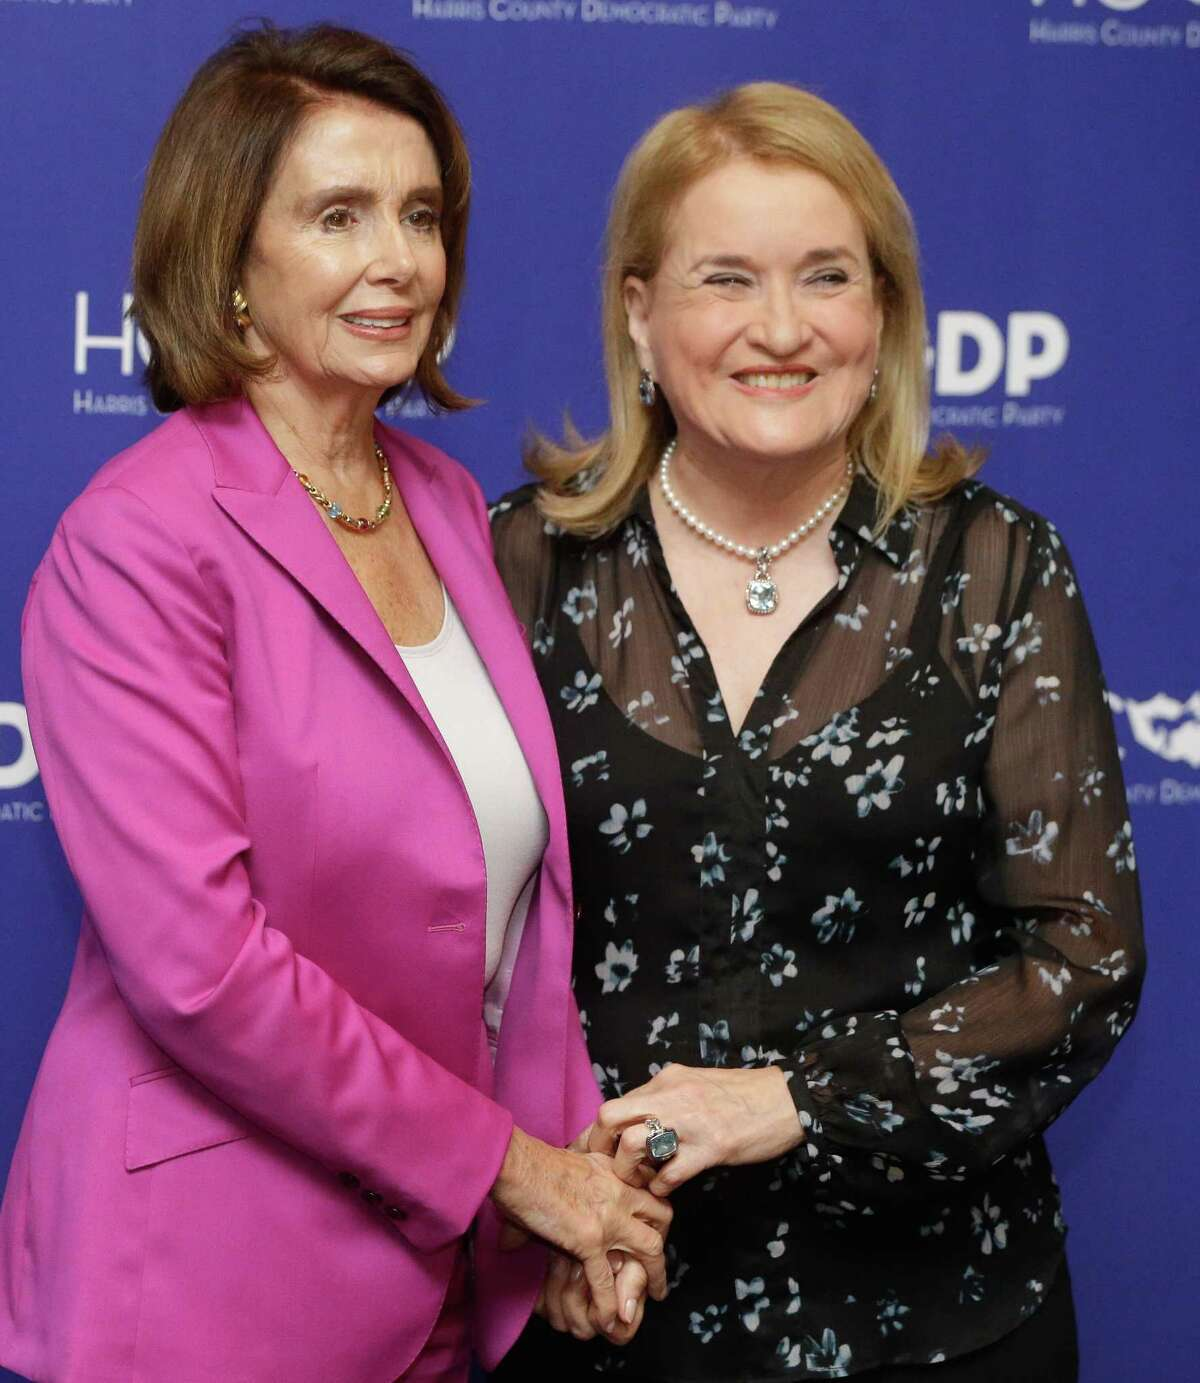 House Minority Leader Nancy Pelosi, left, Texas State Senator Sylvia Garcia, right, pose for photos at the Harris County Democratic Party fundraiser at the Marriott Marquis Houston, 1777 Walker Street, Friday, Feb. 16, 2017. Pelosi is the keynote speaker at the event.